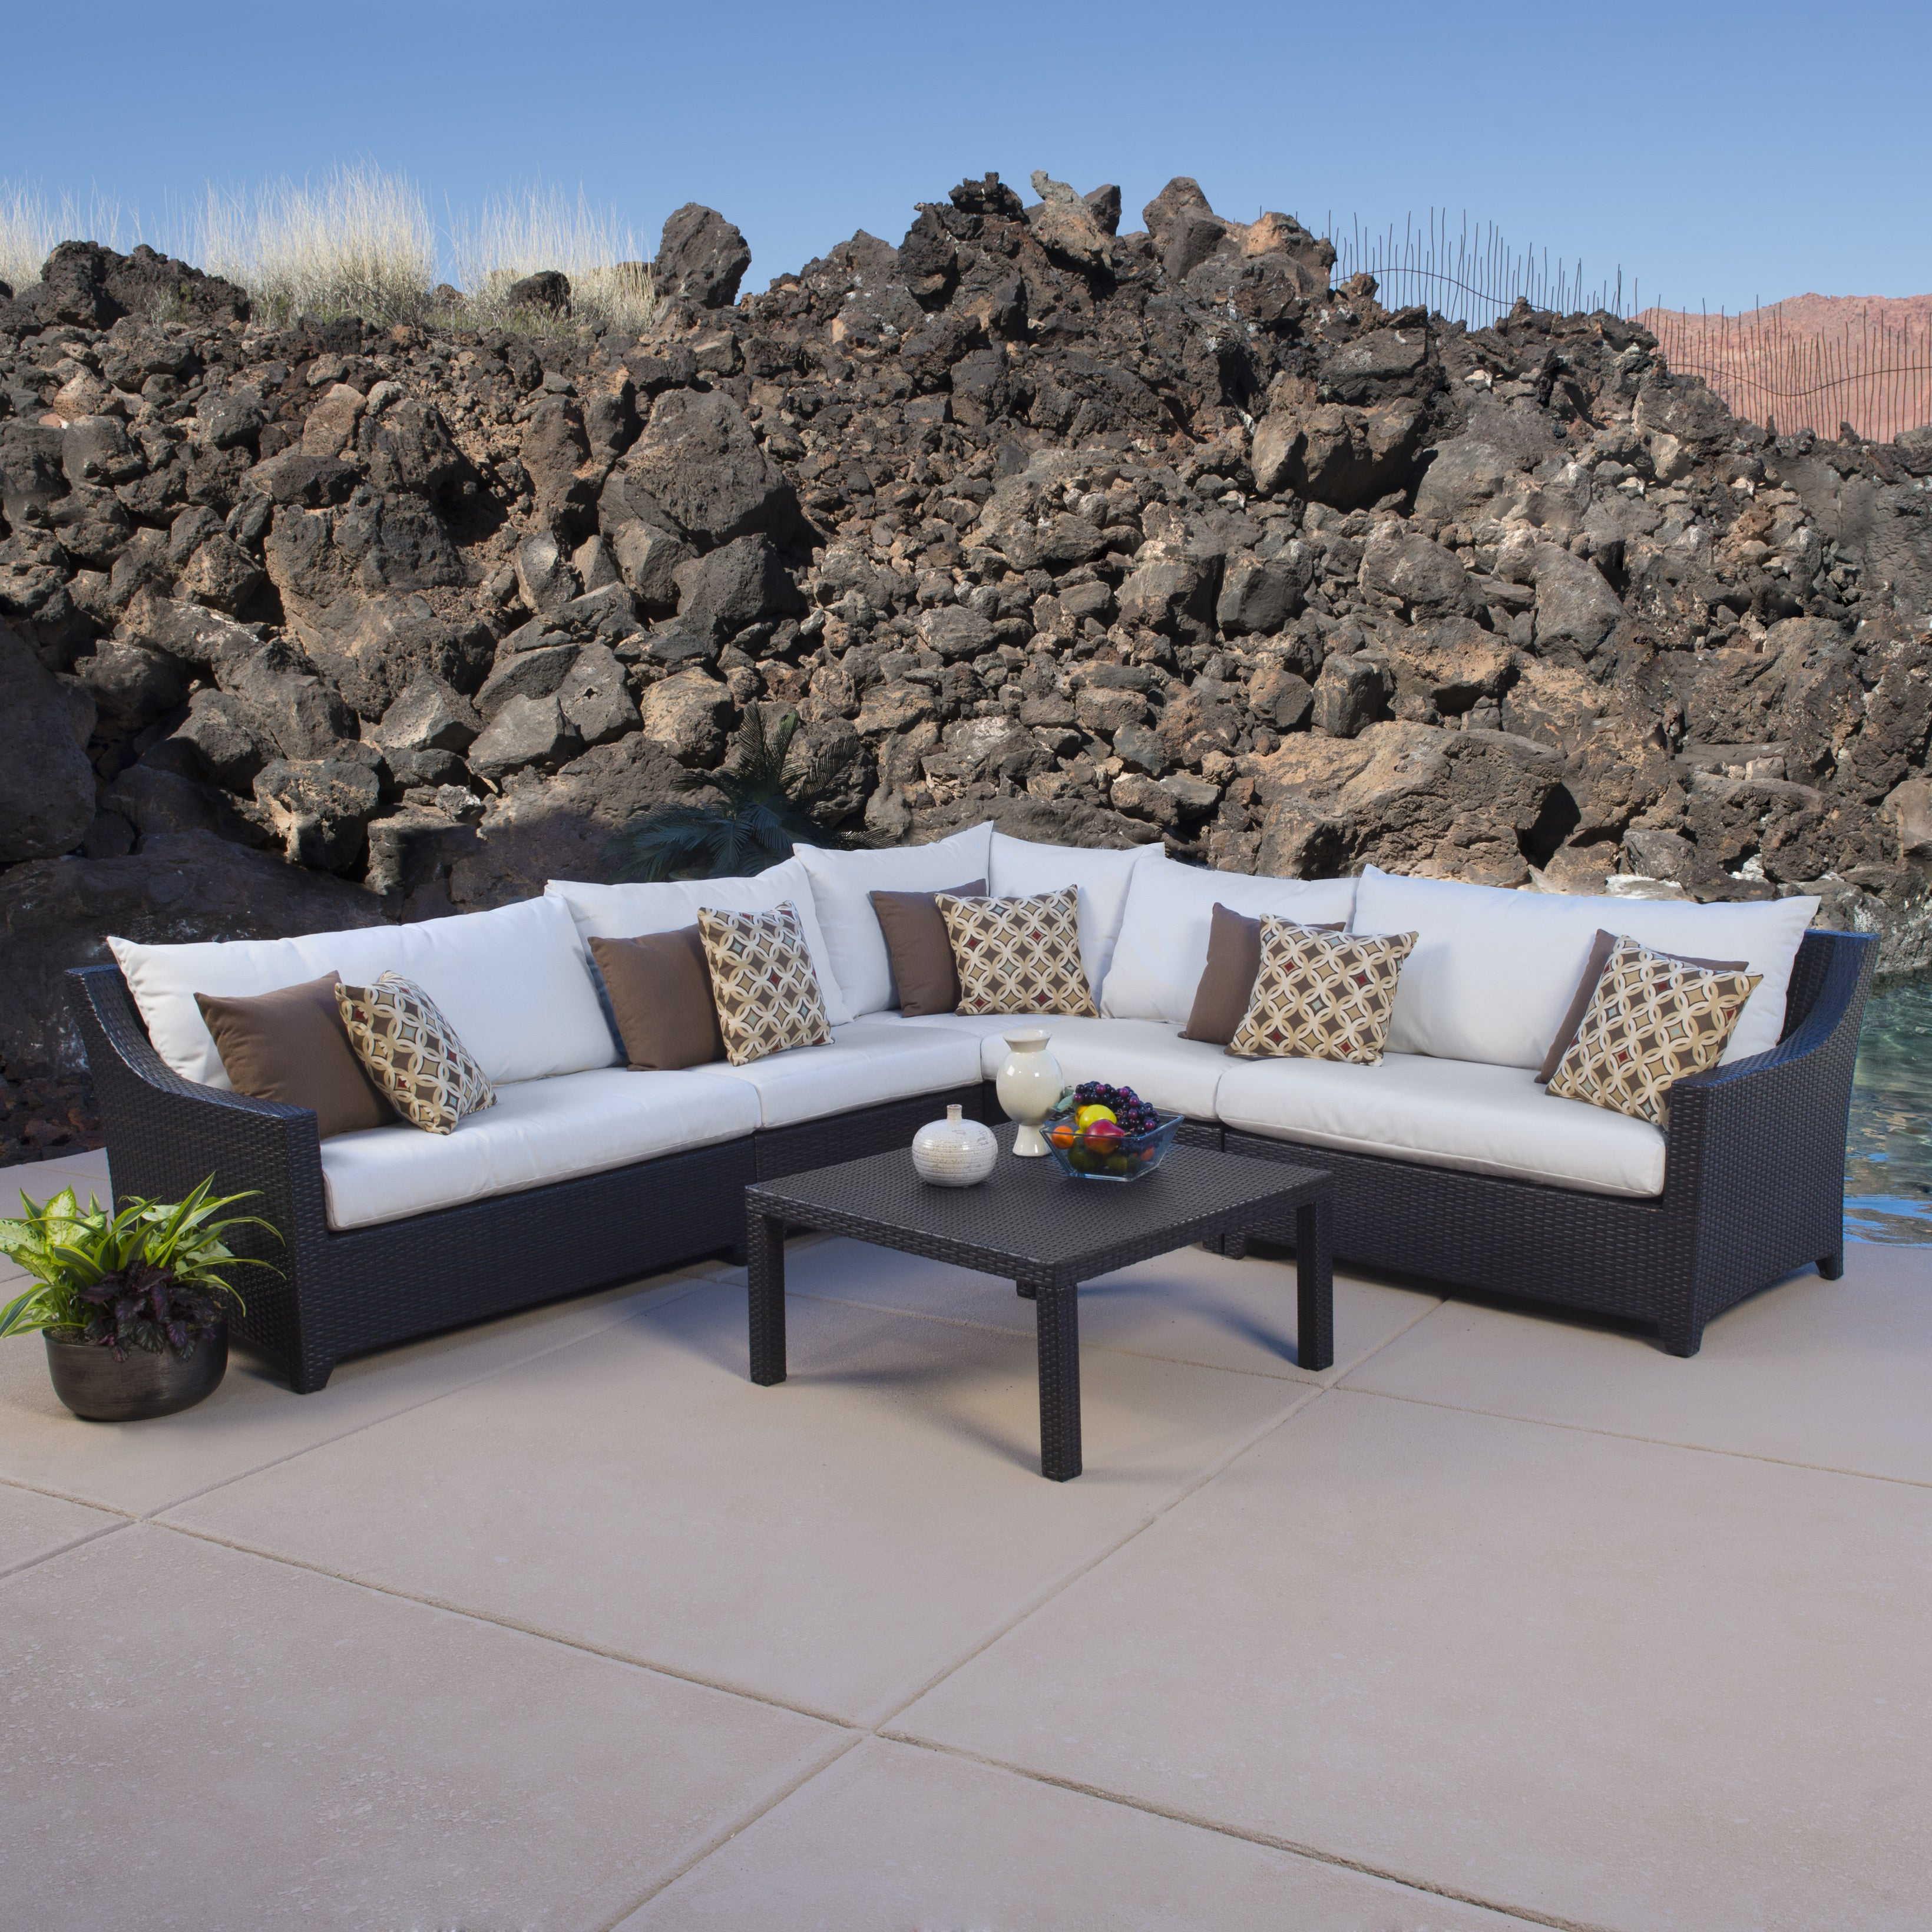 Best And Newest Deco 6 Piece Corner Sectional Set With Moroccan Cream Cushionsrst Brands Within Tess Corner Living Patio Sectionals With Cushions (View 15 of 20)